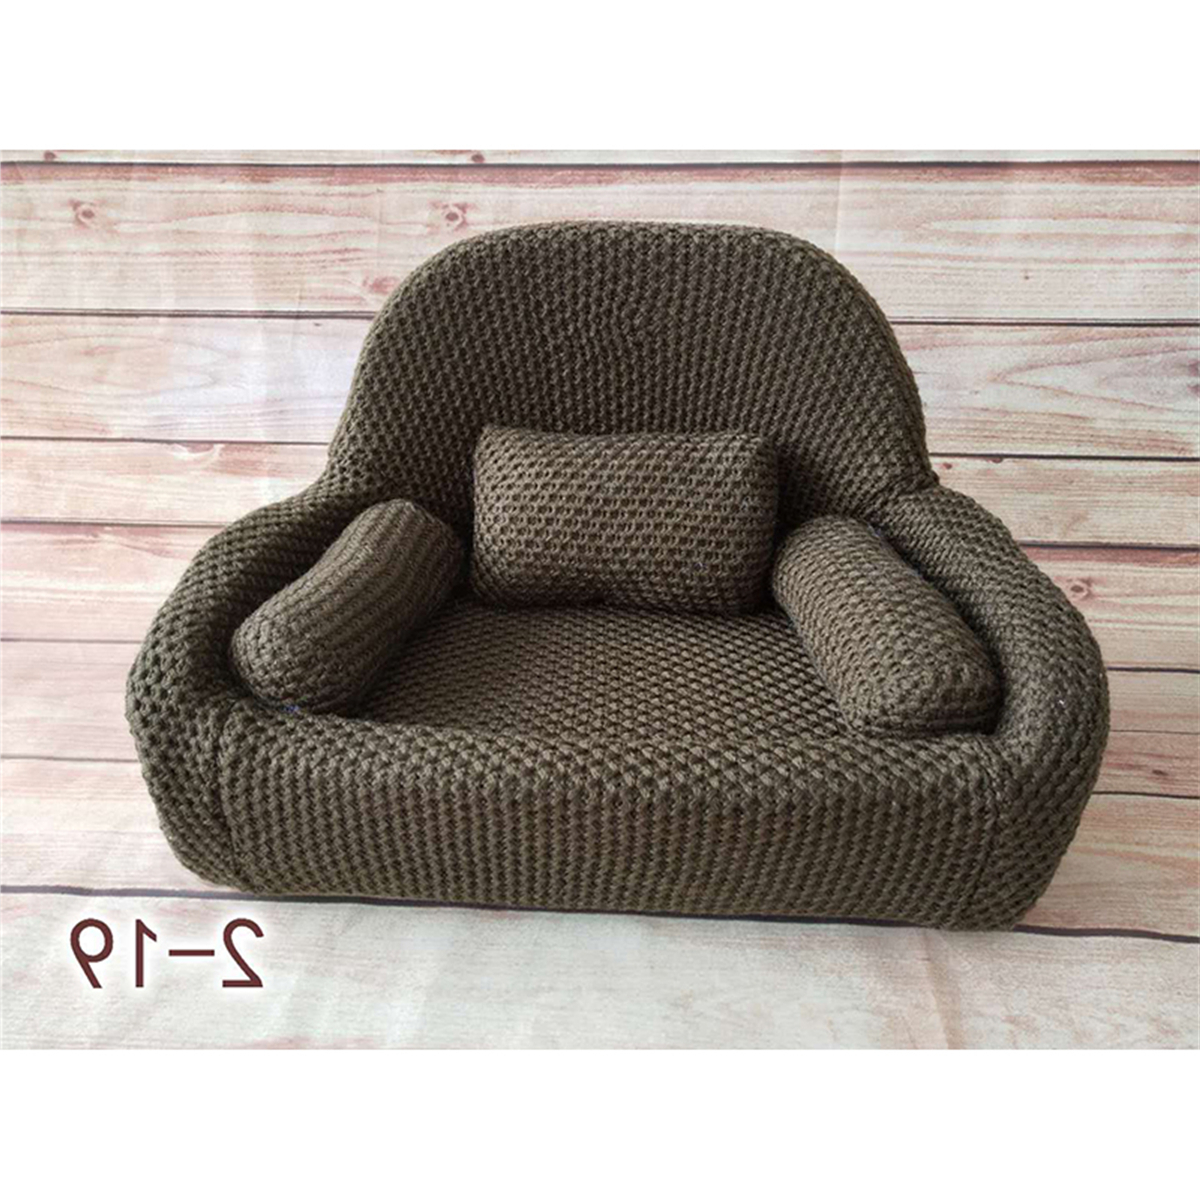 Details Zu Newborn Baby Photo Props Small Sofa Seat With 3 Cushions Photography Pose Shoot In Most Current Tripp Sofas With Cushions (View 19 of 25)